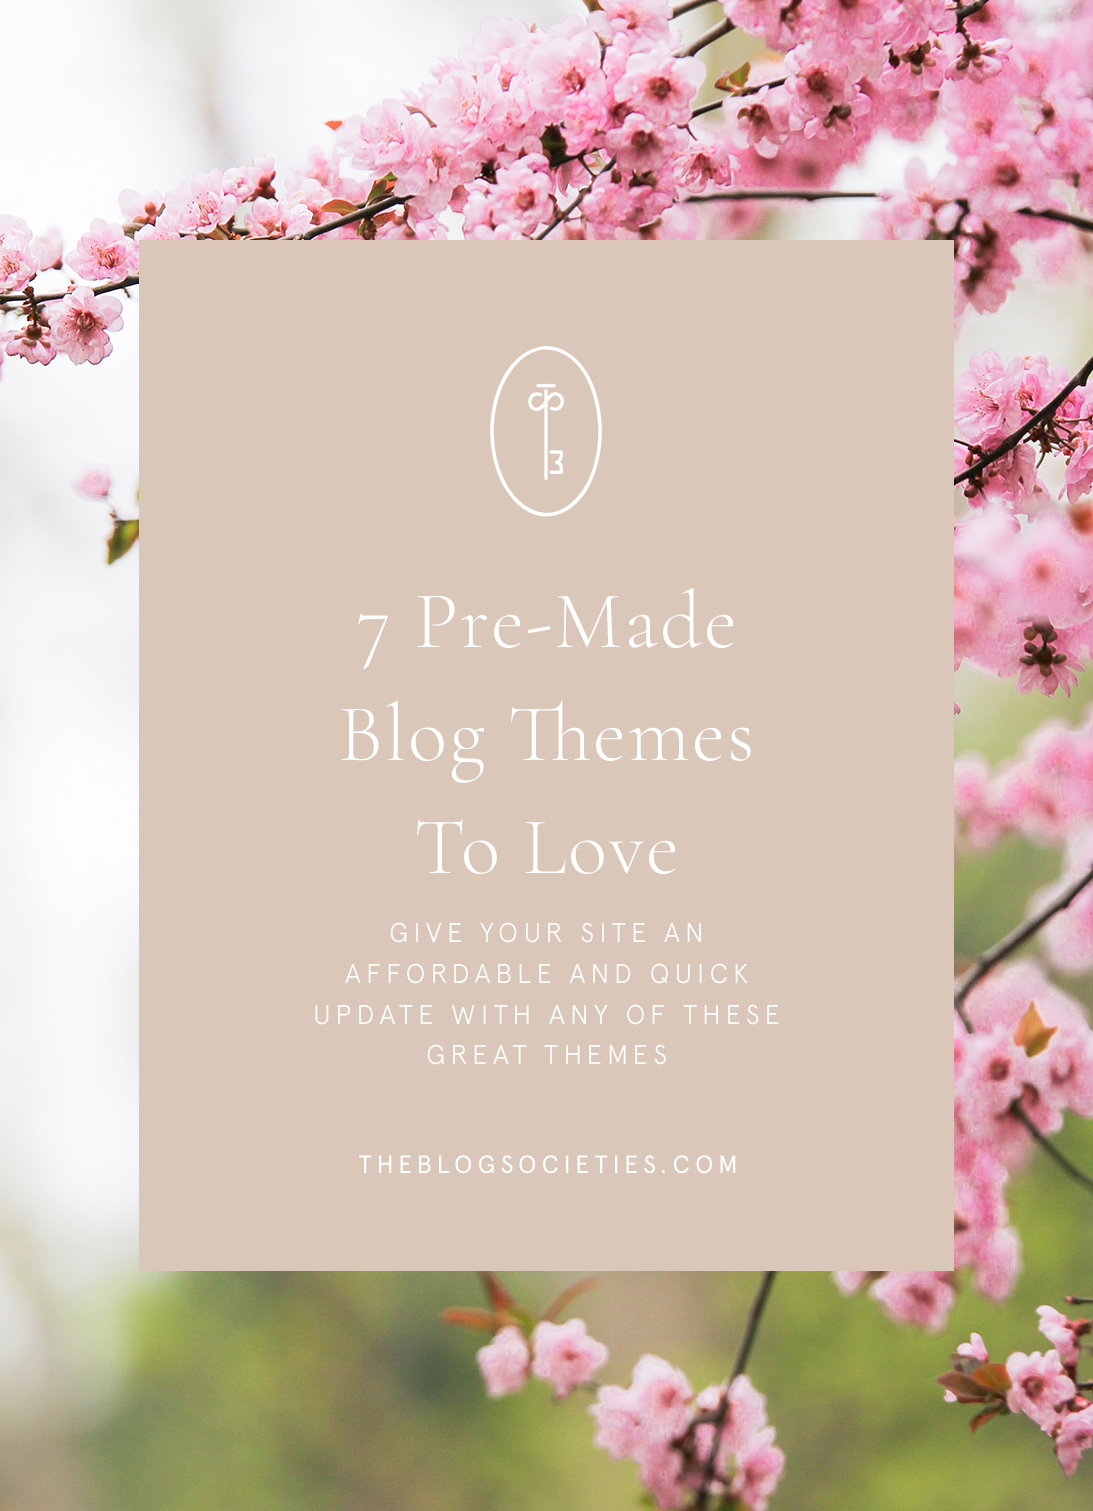 pre-made blog themes for fashion bloggers - The Blog Societies | 7 Pre-Made WordPress Blog Themes To Love featured by popular blogging community, The Blog Societies